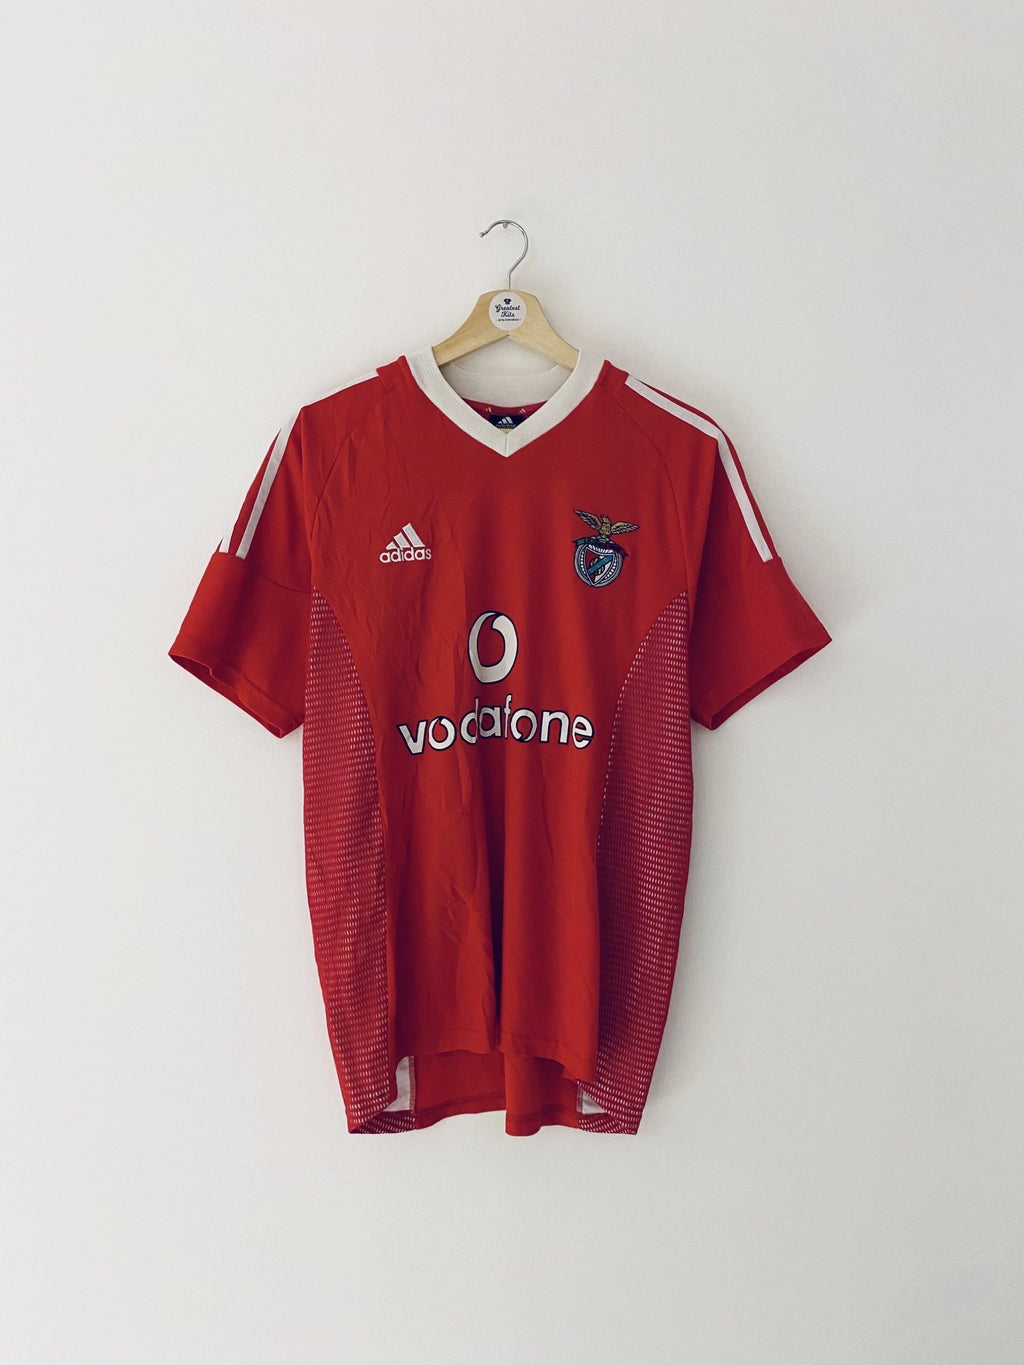 2002/03 Benfica Home Shirt (M) 8.5/10